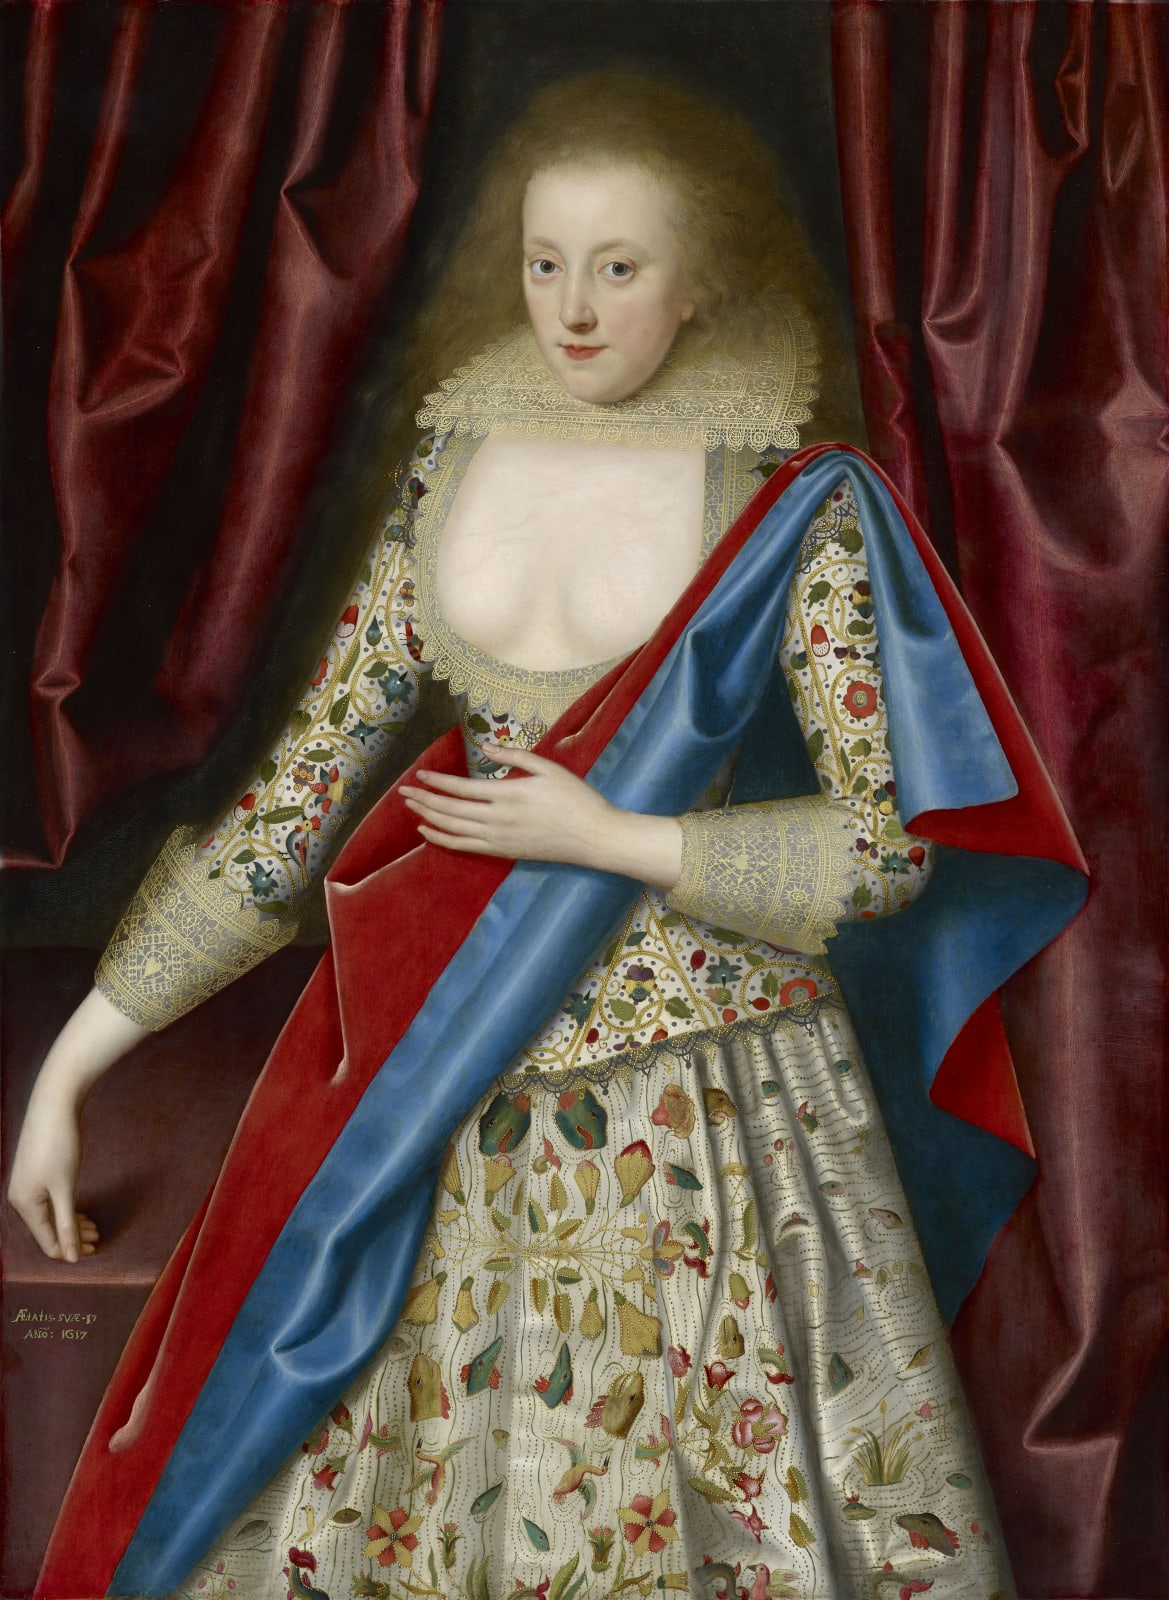 Jane, Lady Thornhagh (c.1600 – 1661)